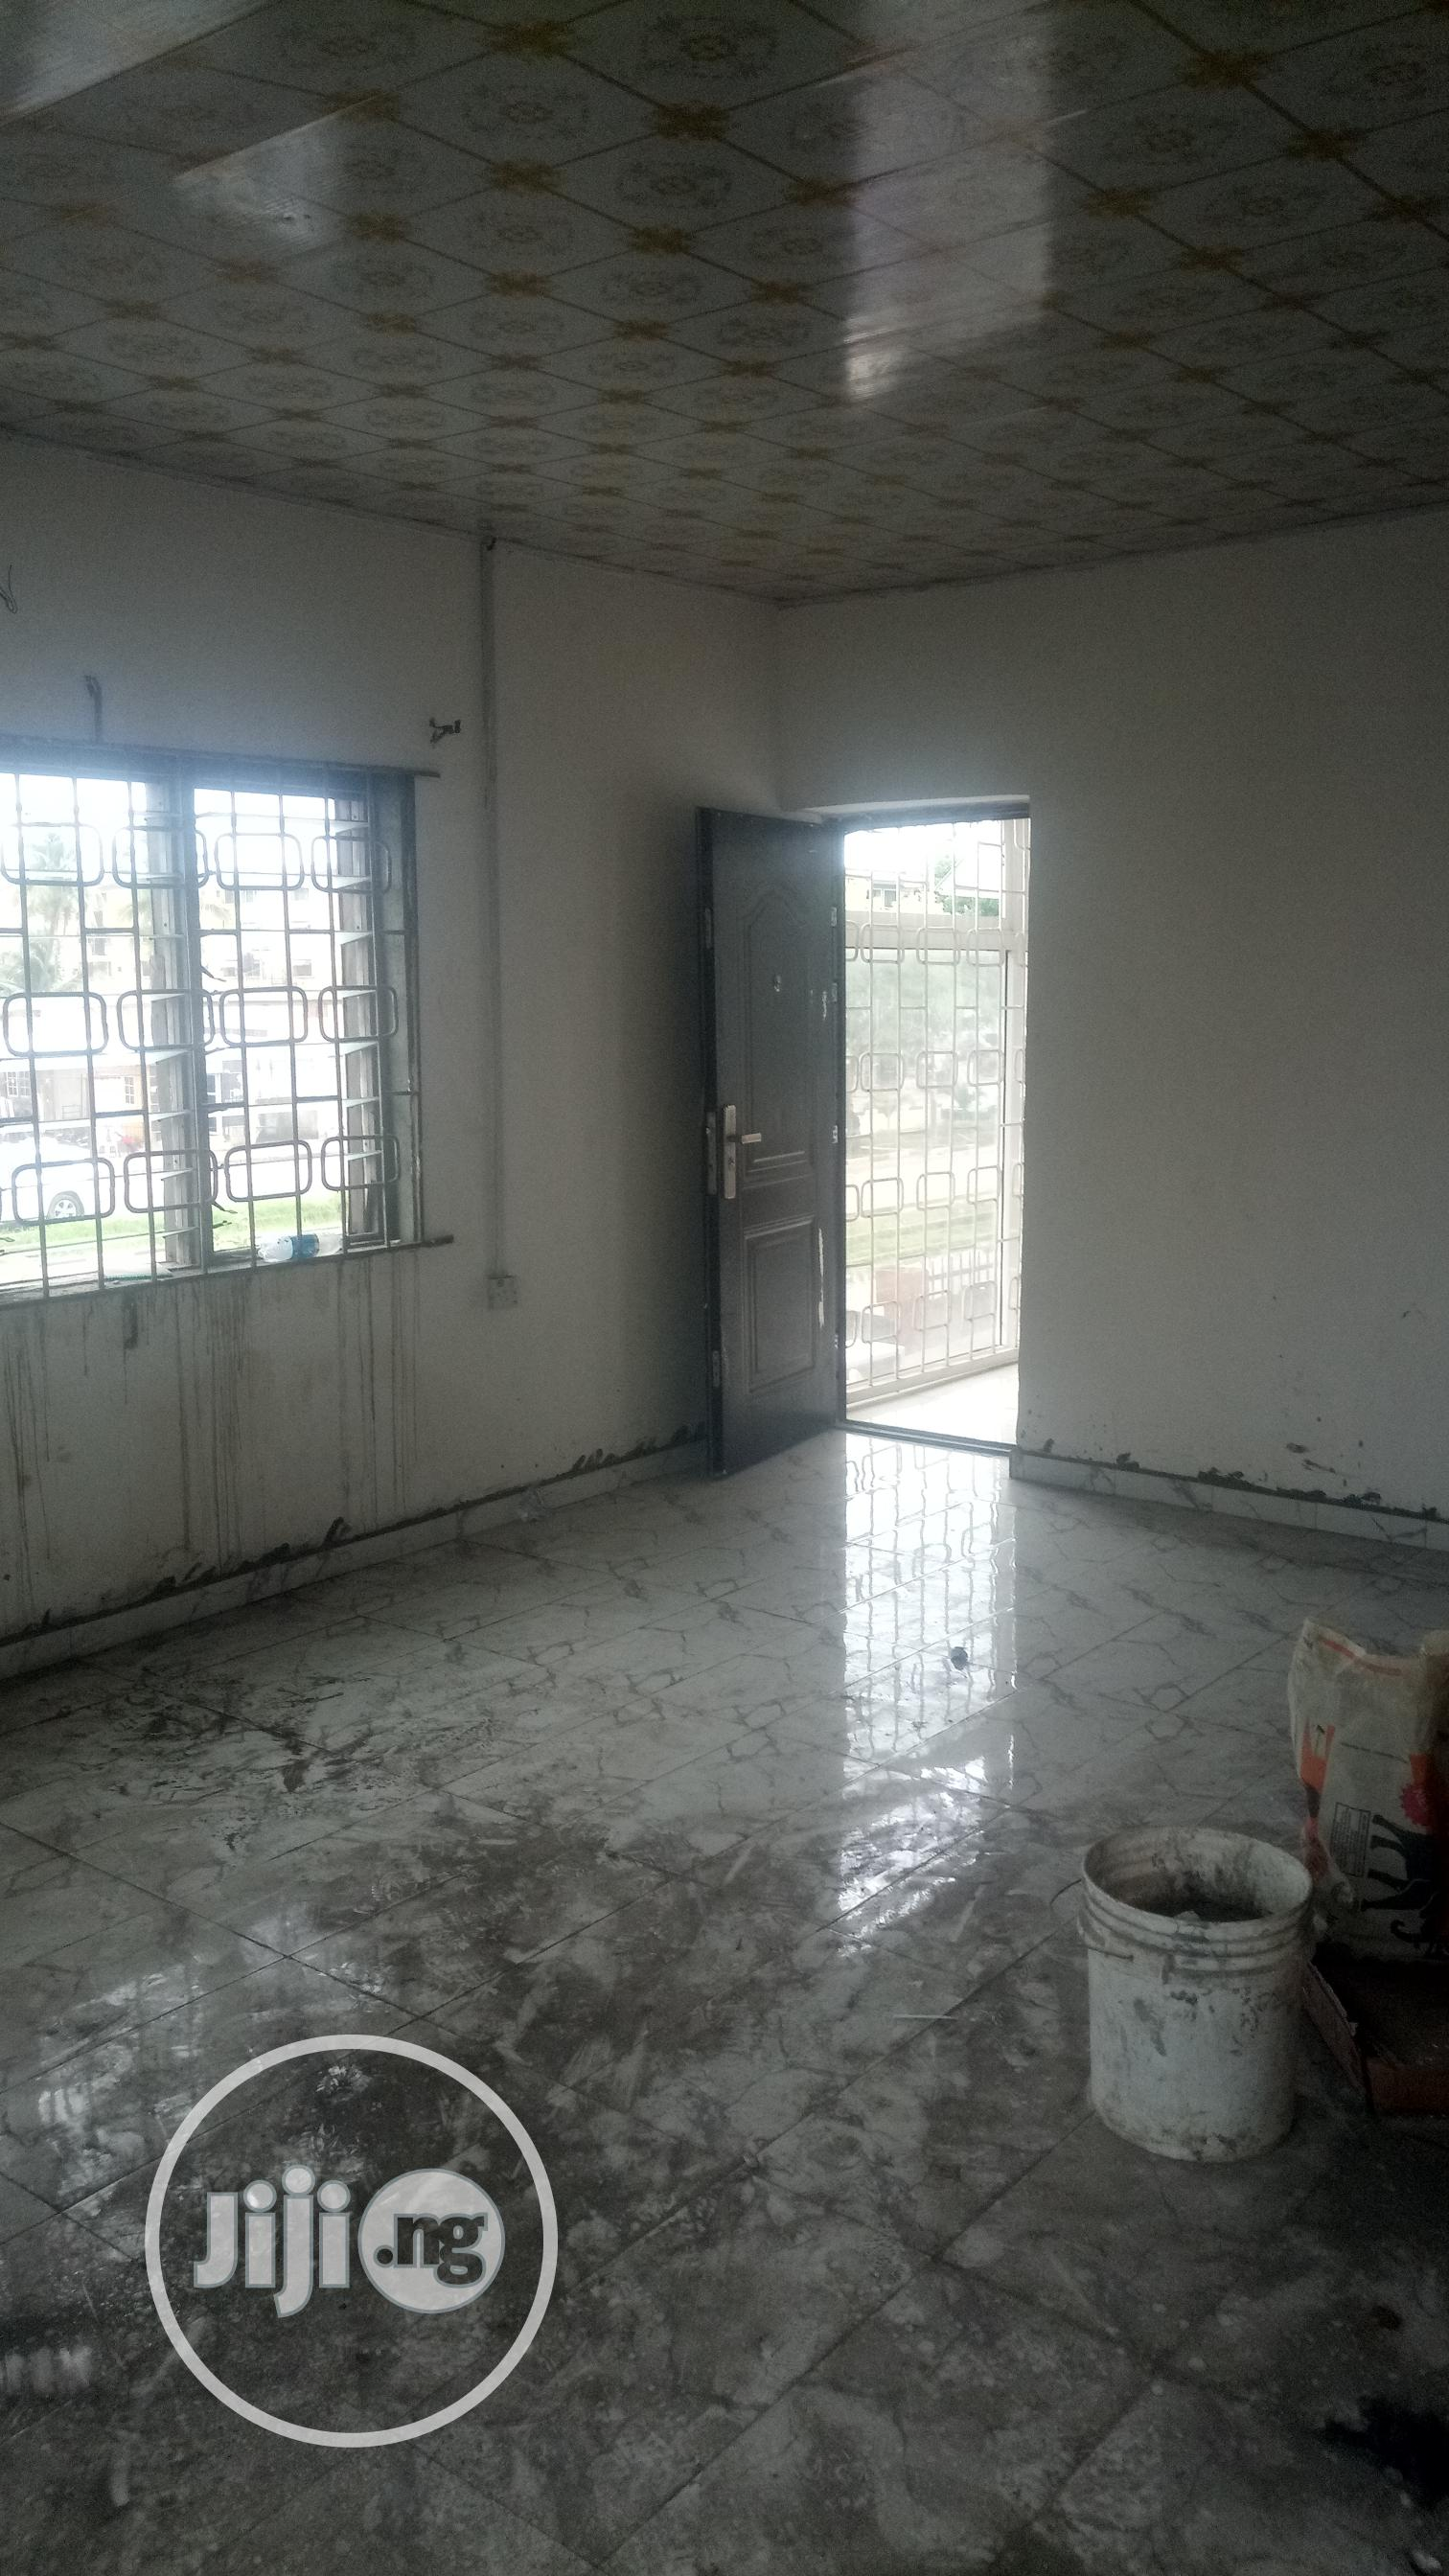 A 3 Bedroom Upstairs For Office Tailoring Studio In Festac In Amuwo Odofin Commercial Property For Rent Nicholas Eloke Nwaikwu Jiji Ng For Sale In Amuwo Odofin Buy Commercial Property For Rent From Nicholas